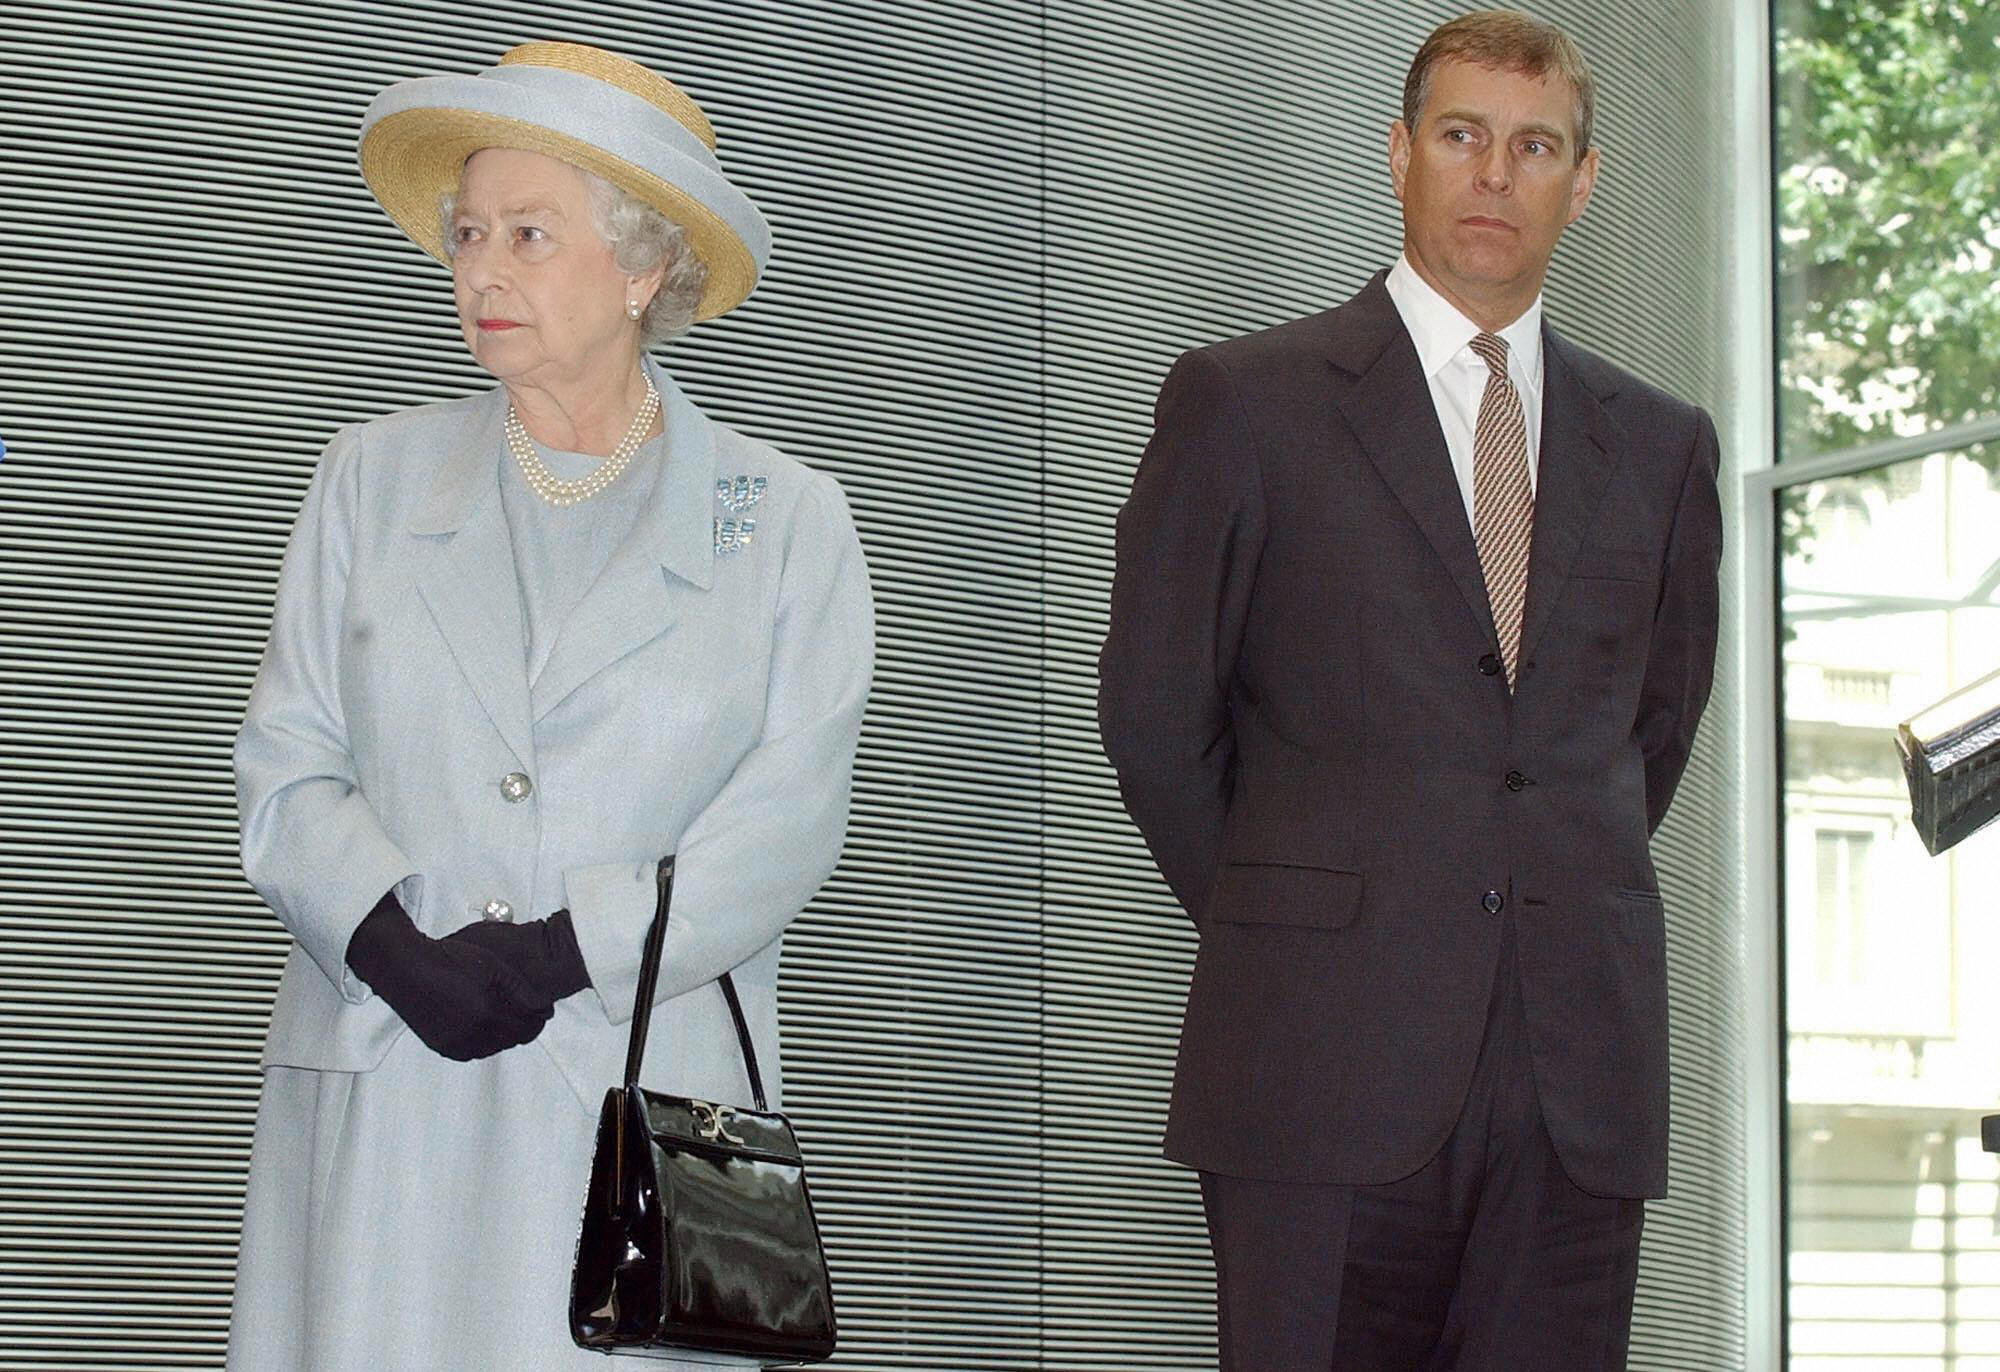 Queen Elizabeth Imperial College London 2004